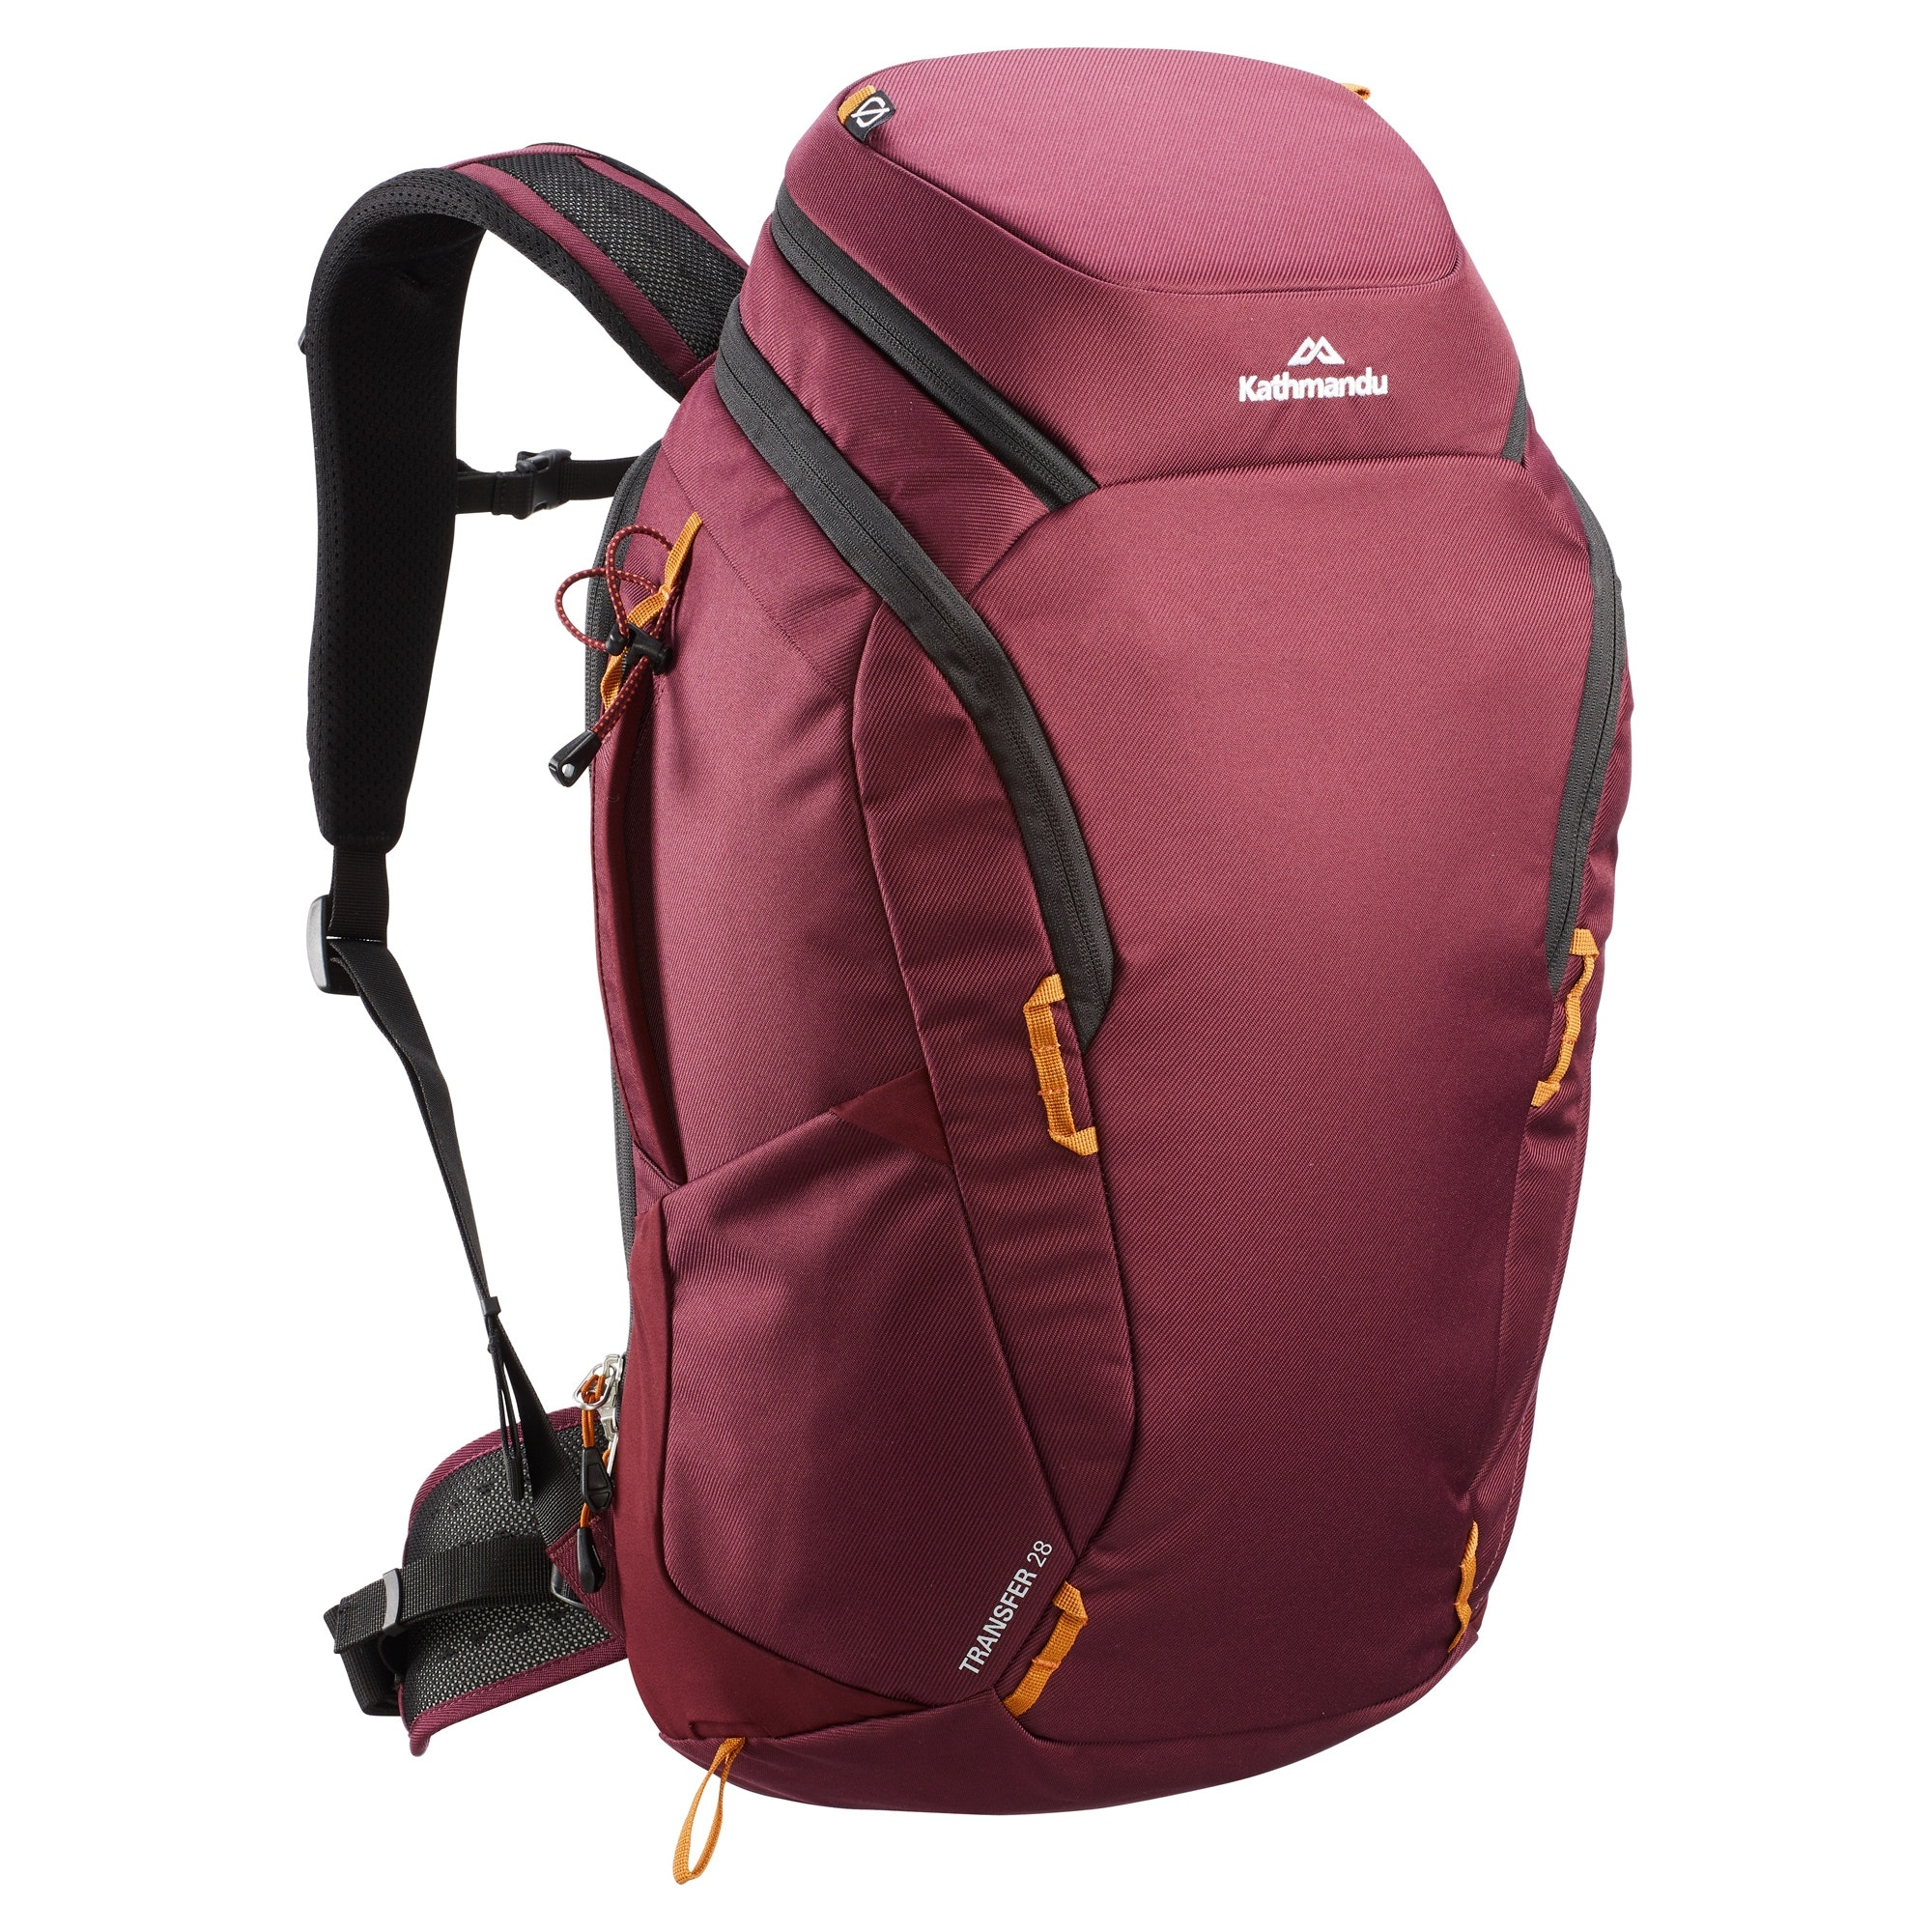 d4ad020d610c Buy Cheap Kathmandu Backpack- Fenix Toulouse Handball